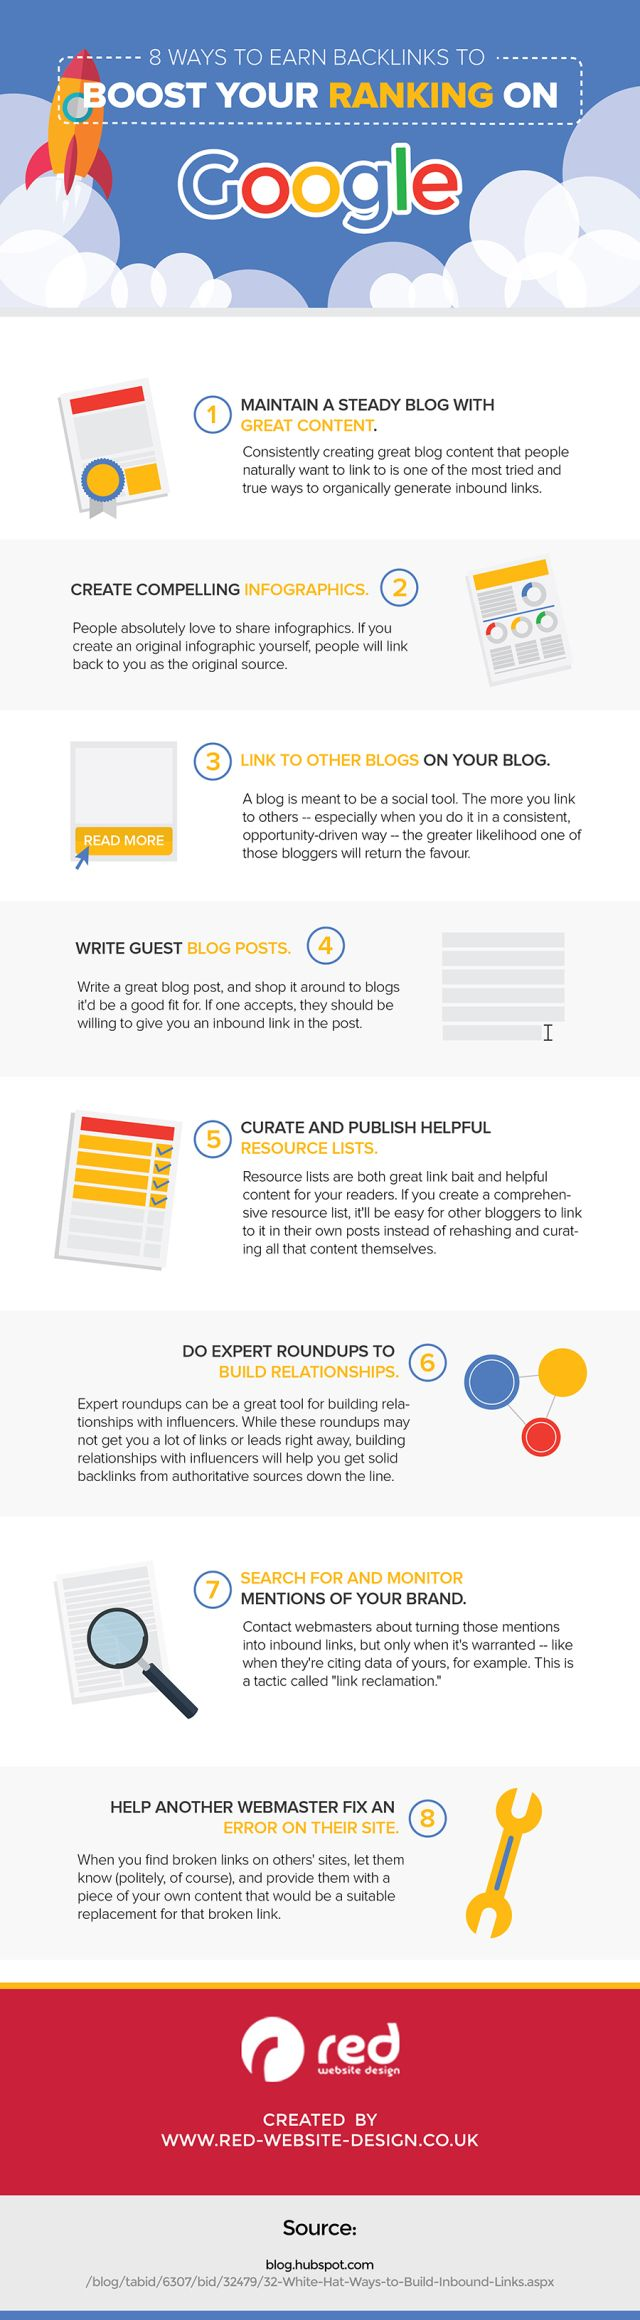 SEO Tips: 8 Ways To Earn Backlinks That Boost Your Ranking On Google…